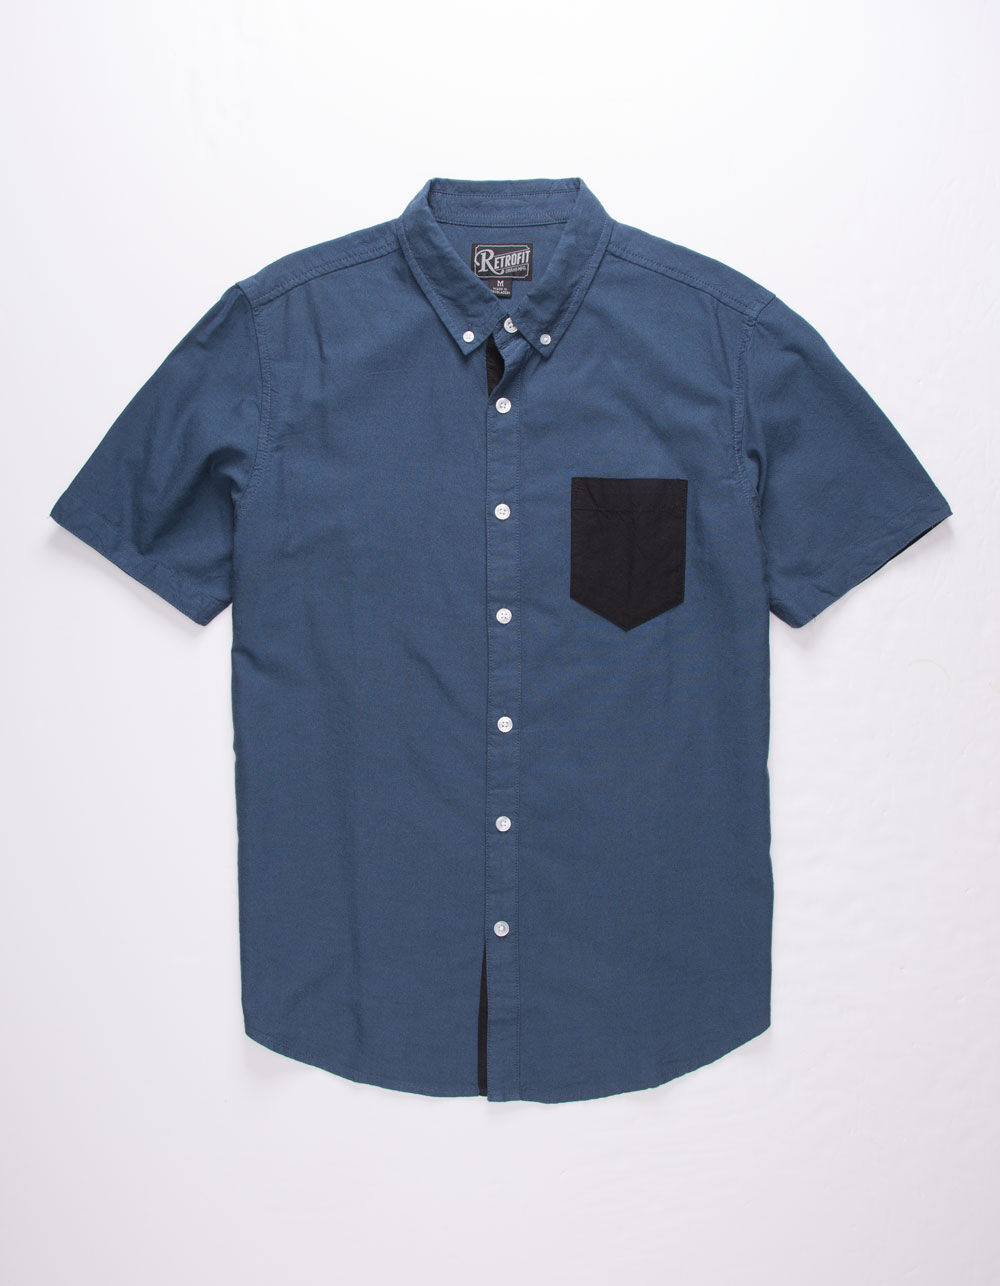 Image of RETROFIT Contrast One Pocket Oxford Shirt